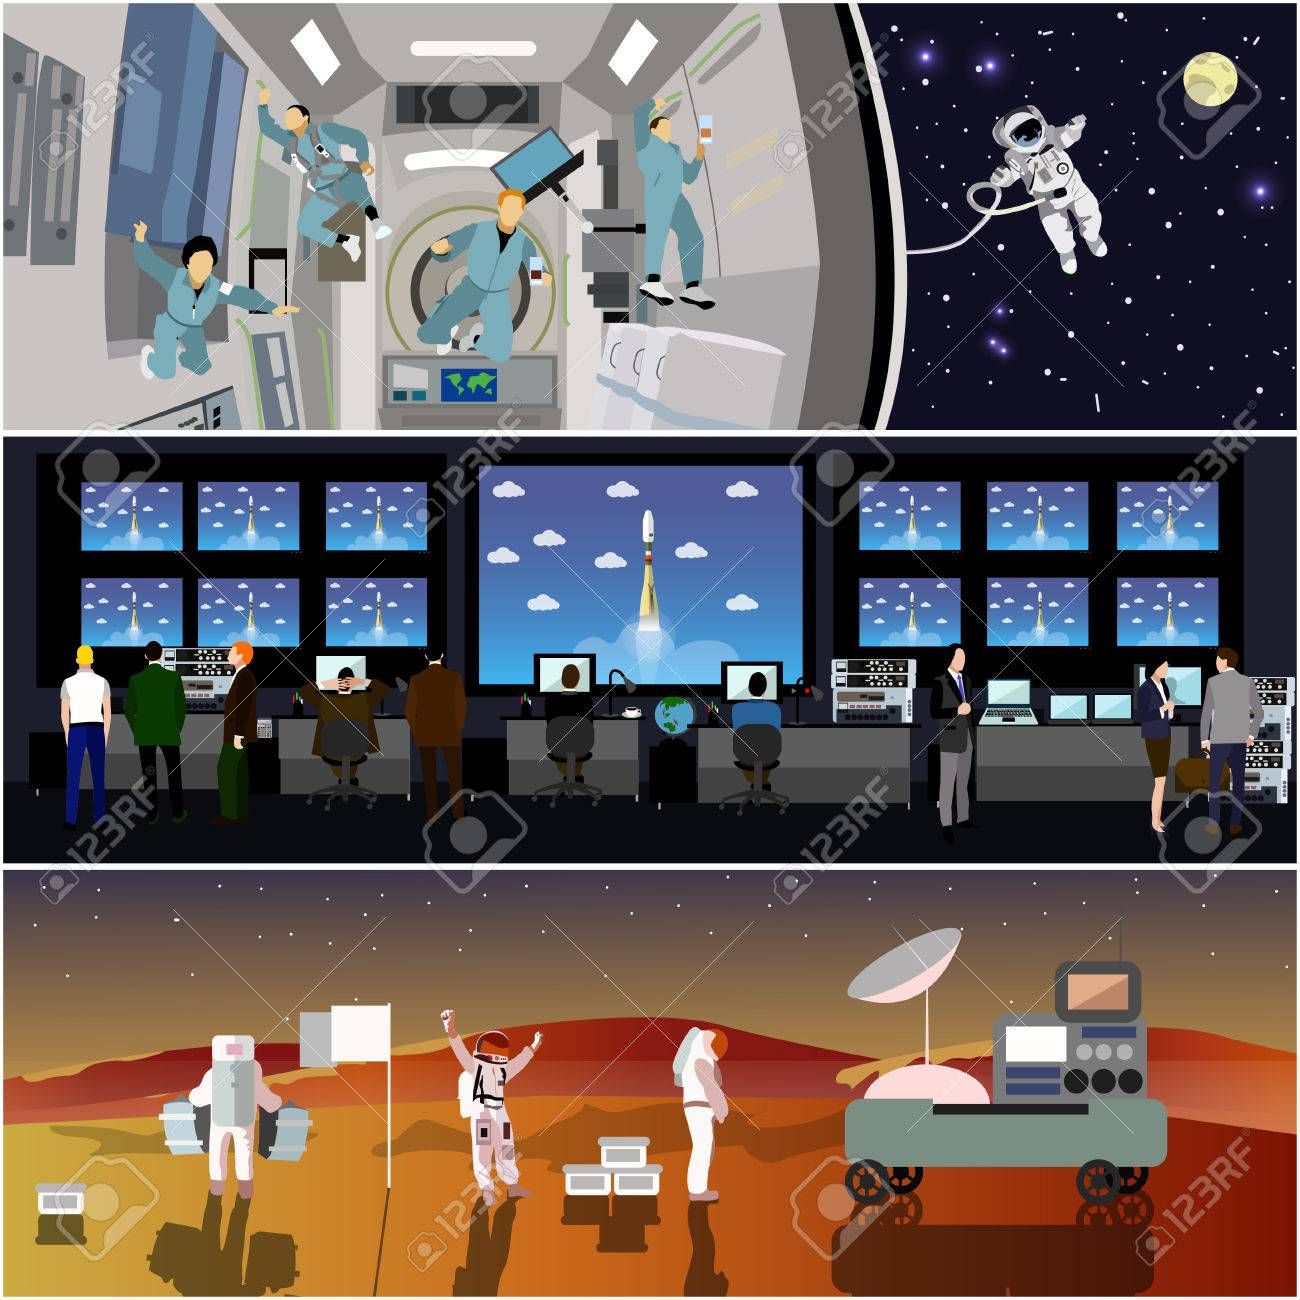 Space mission control center. Rocket launch vector illustration. Astronauts in space station and outer space. Landing to Mars landscape concept. - 53991138